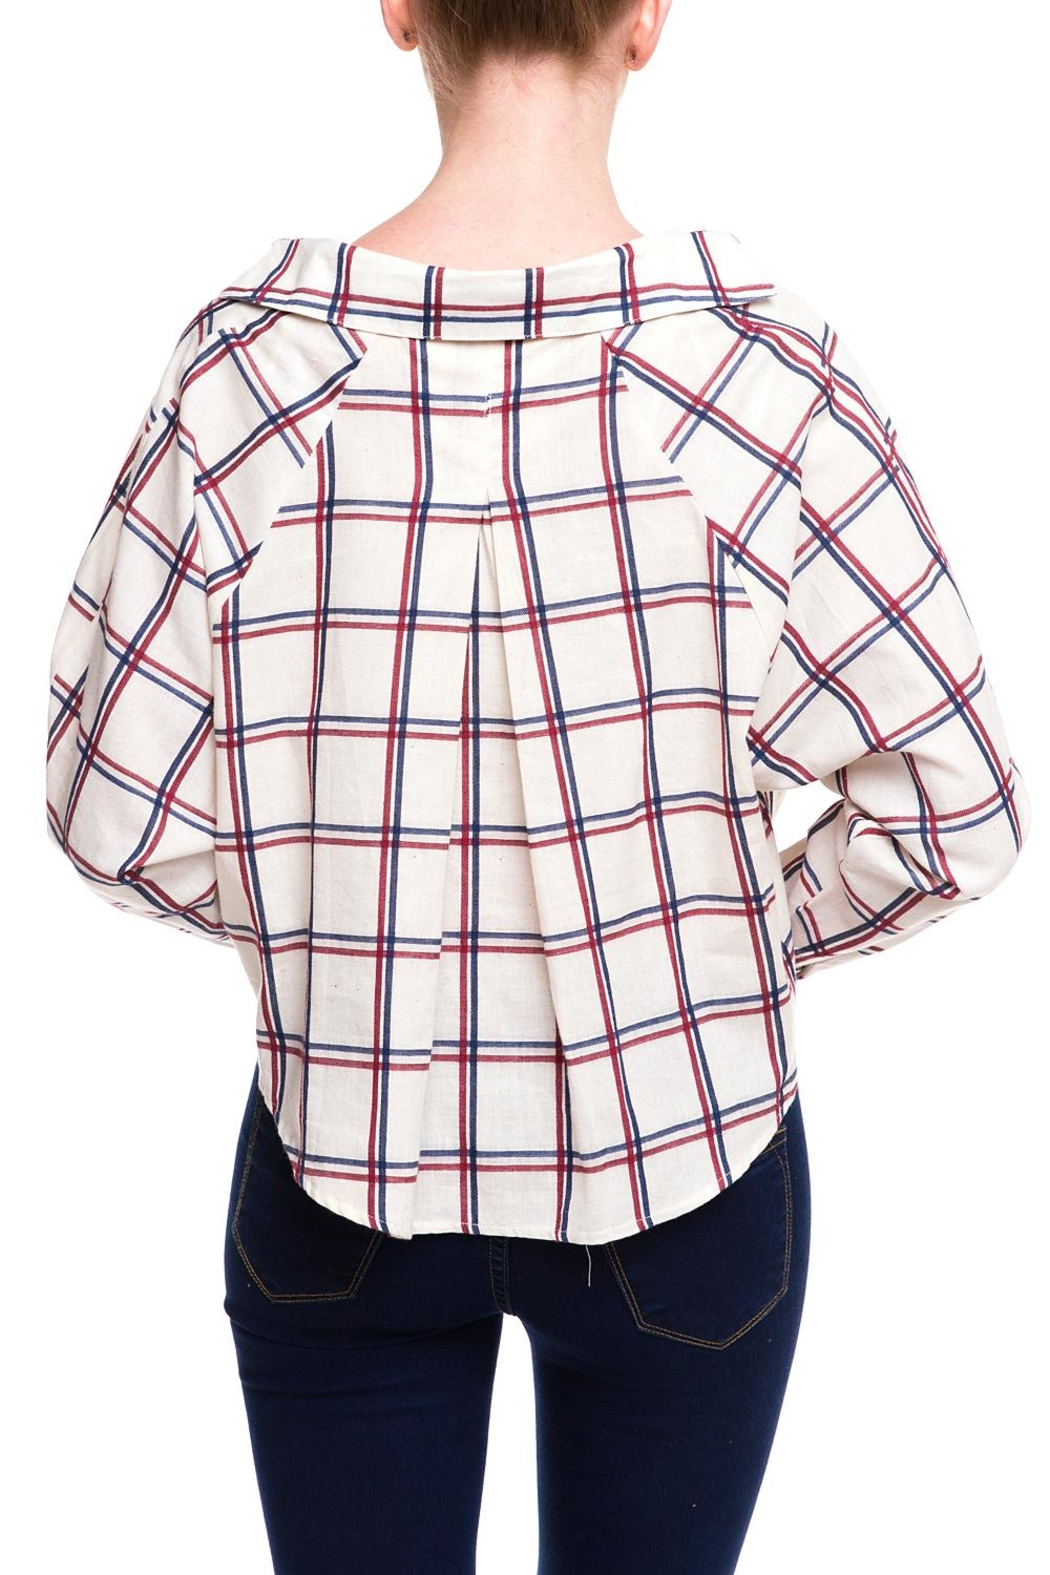 HYFVE Graph Tied Blouse - Side Cropped Image